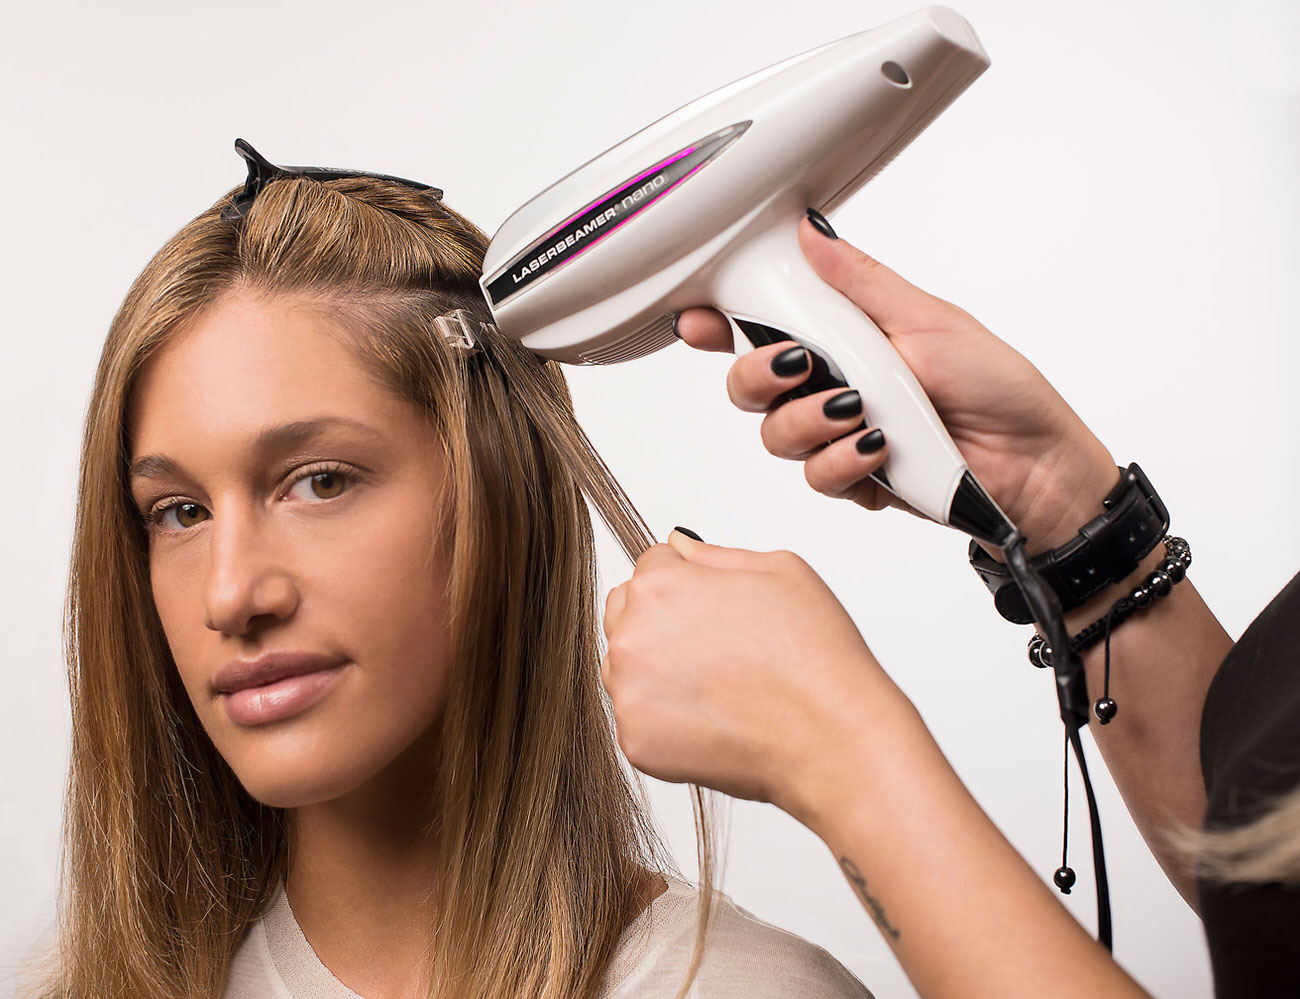 Hair Extension Application Process Using Hairdreams Hair